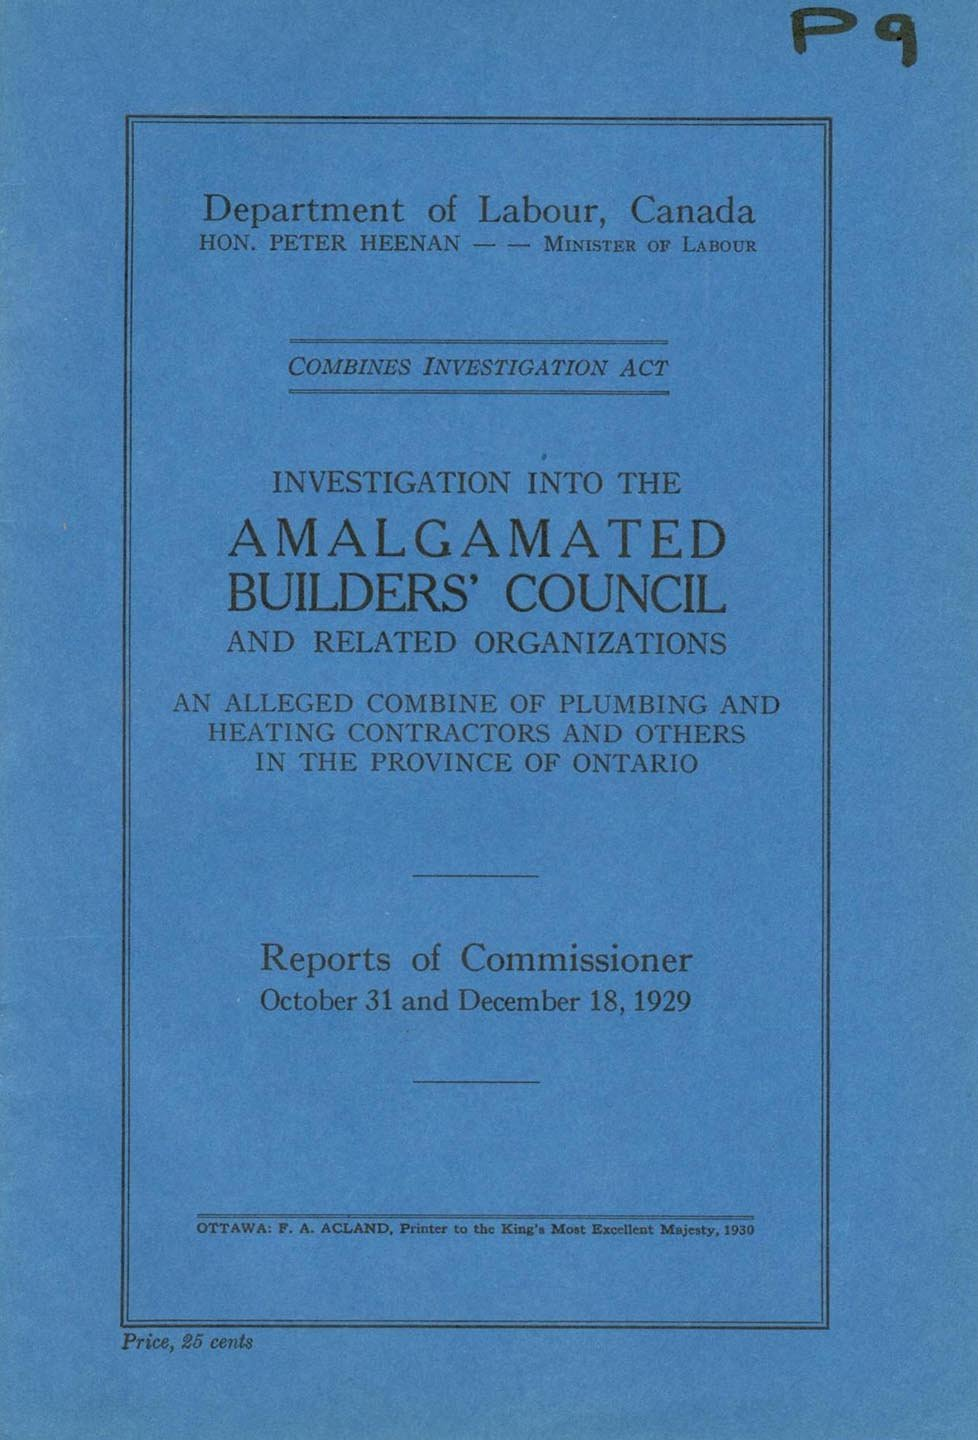 Investigation into the Amalgamated Builders' Council and Related Organizations